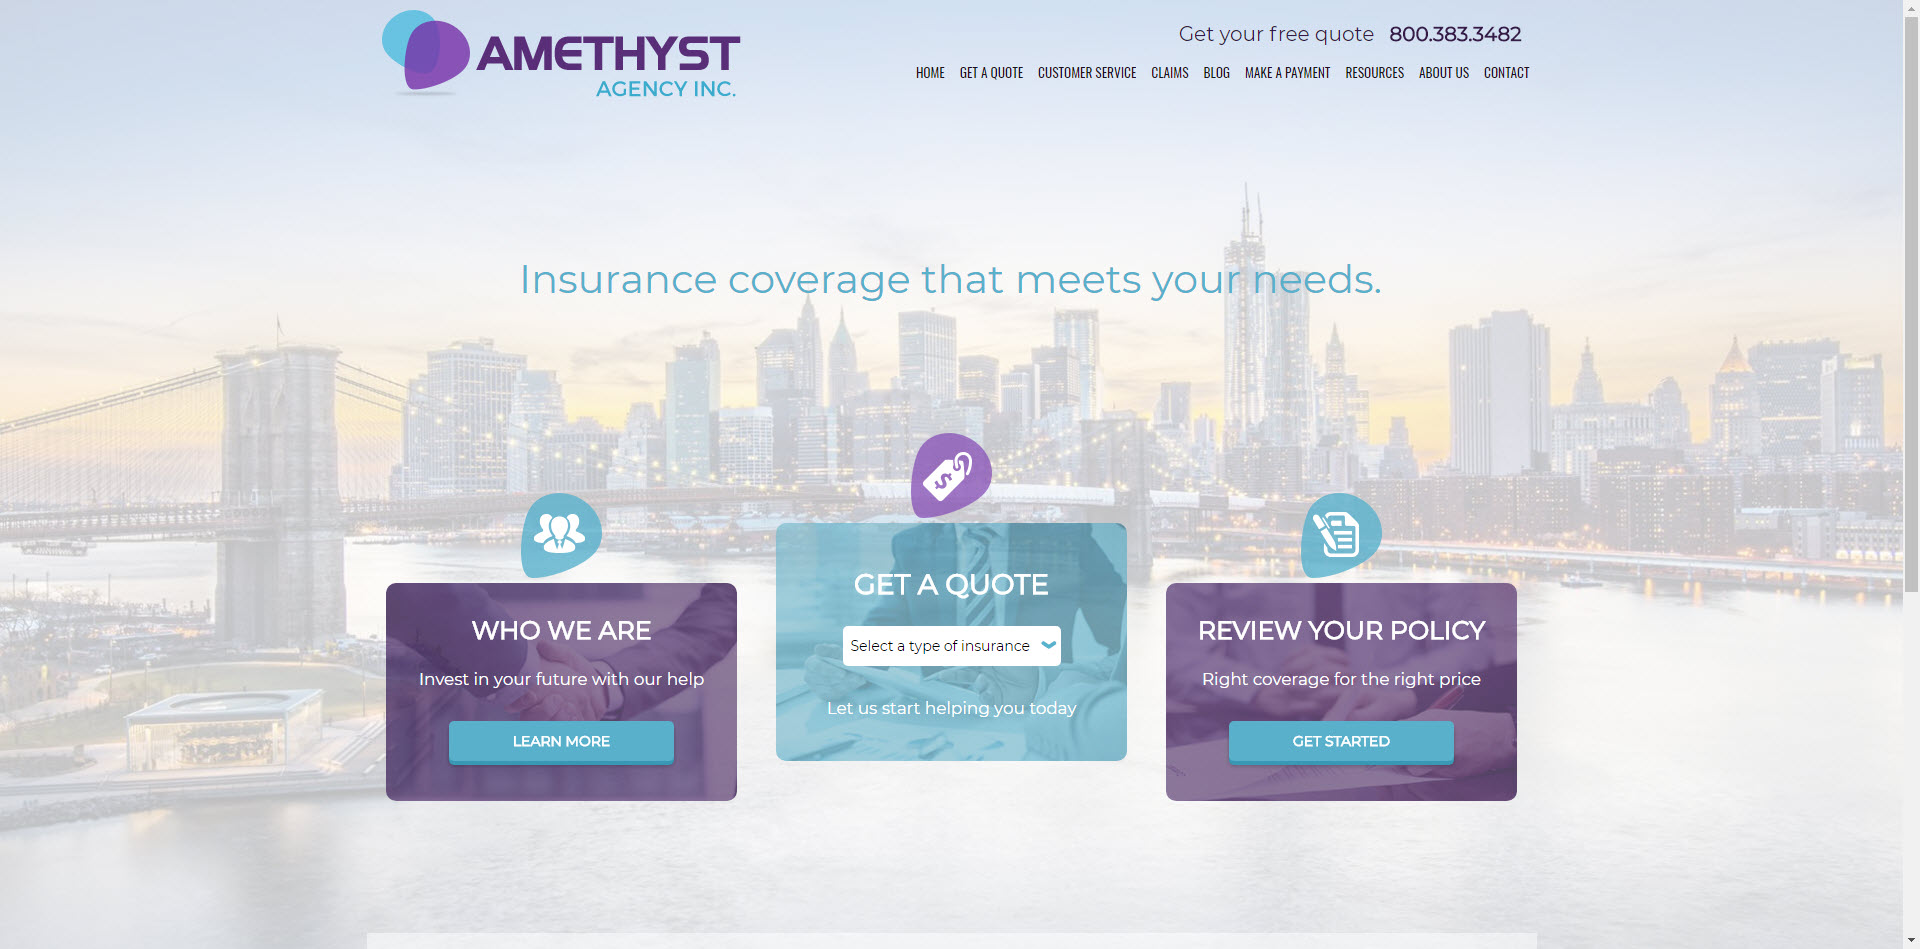 Amythest ITC insurance website template